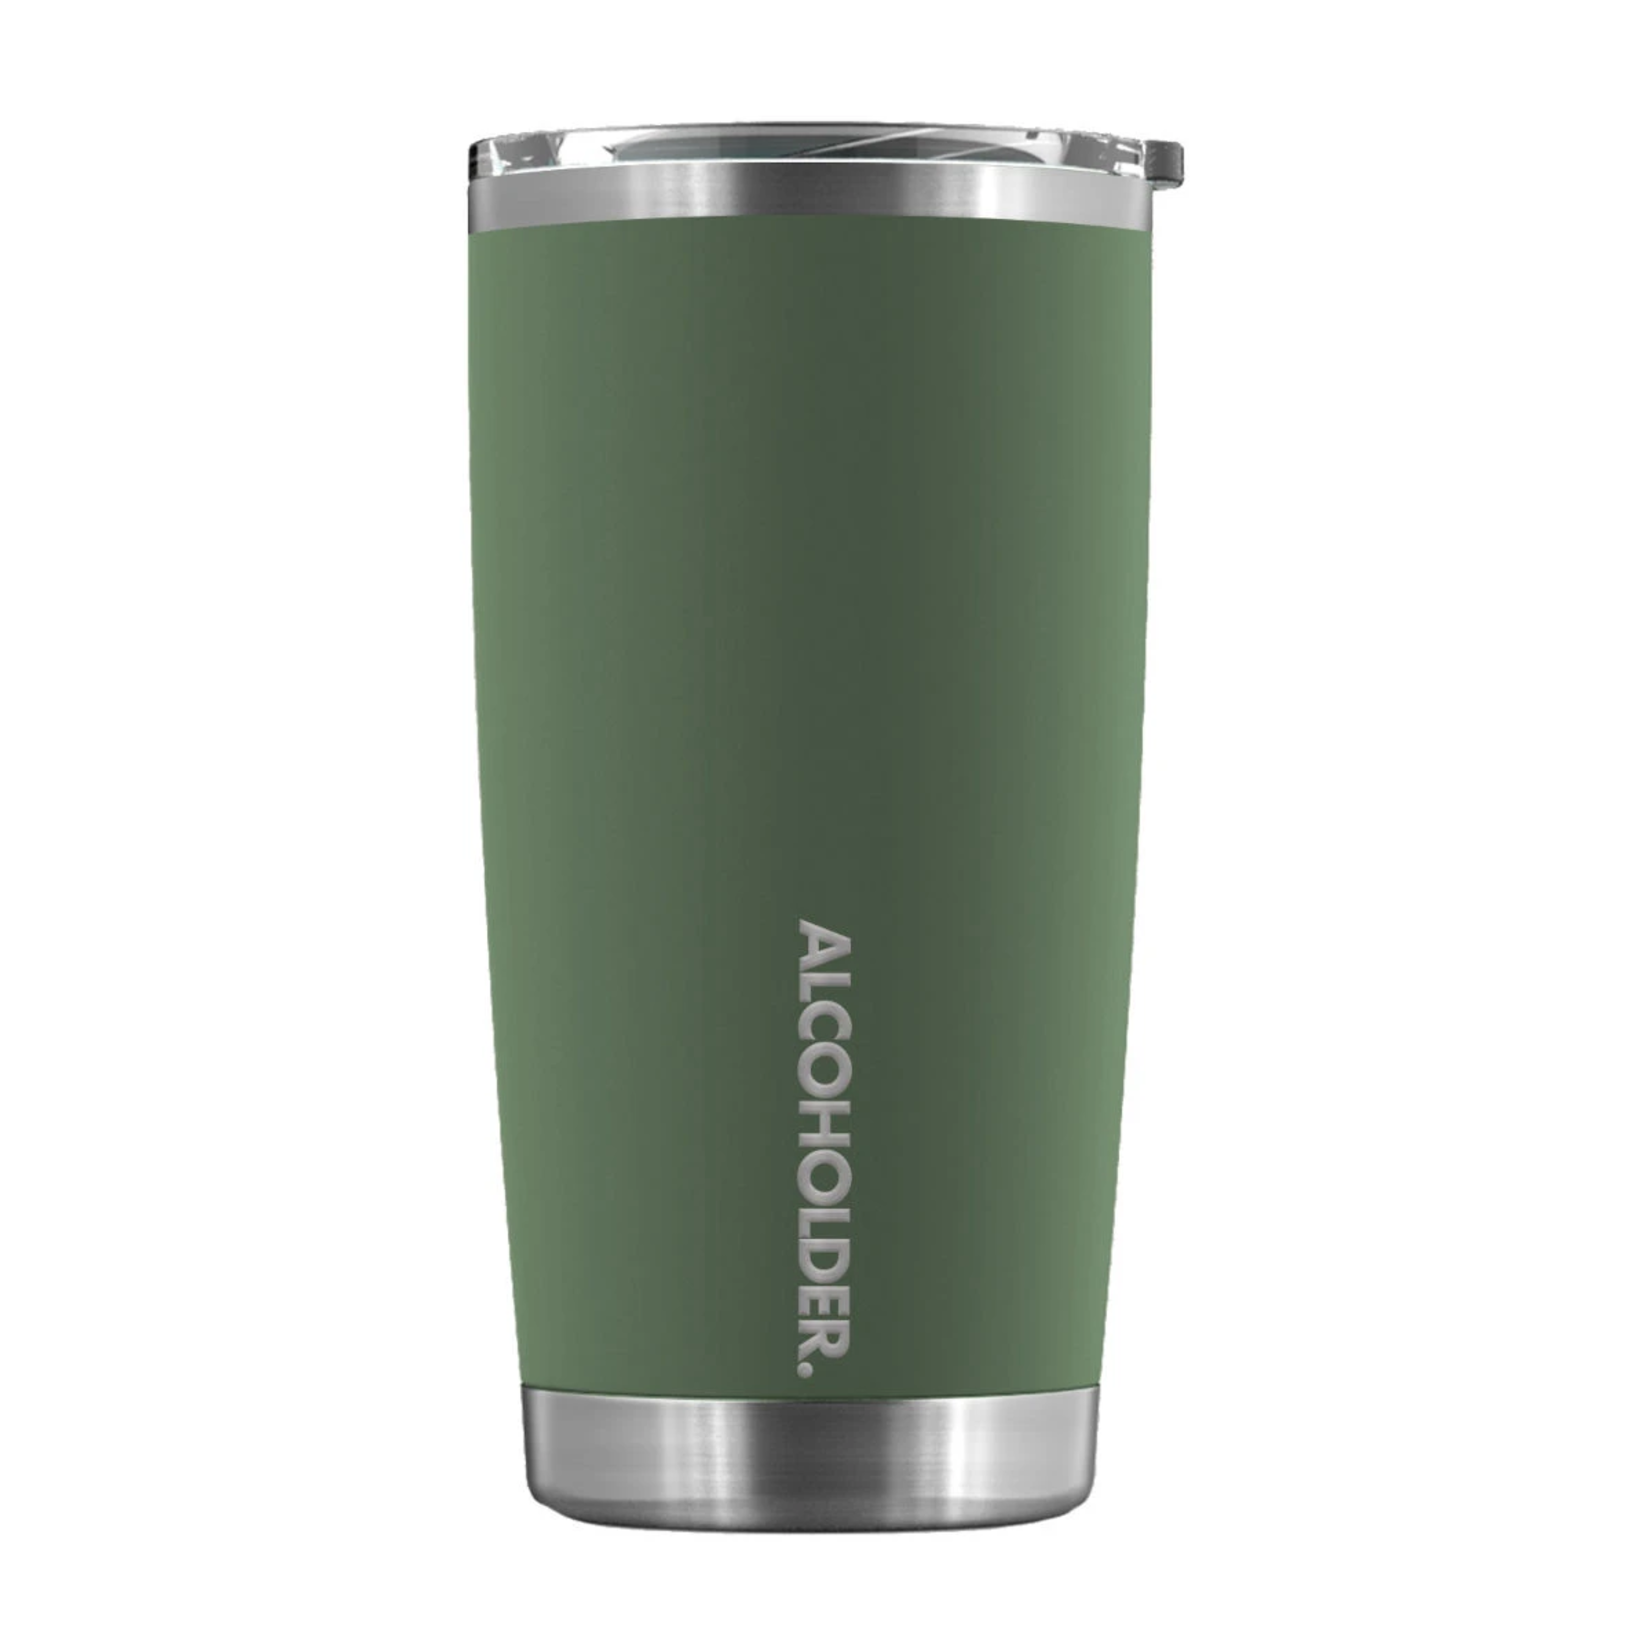 Alcoholder Alcoholder 5 O'Clock Insulated Tumbler